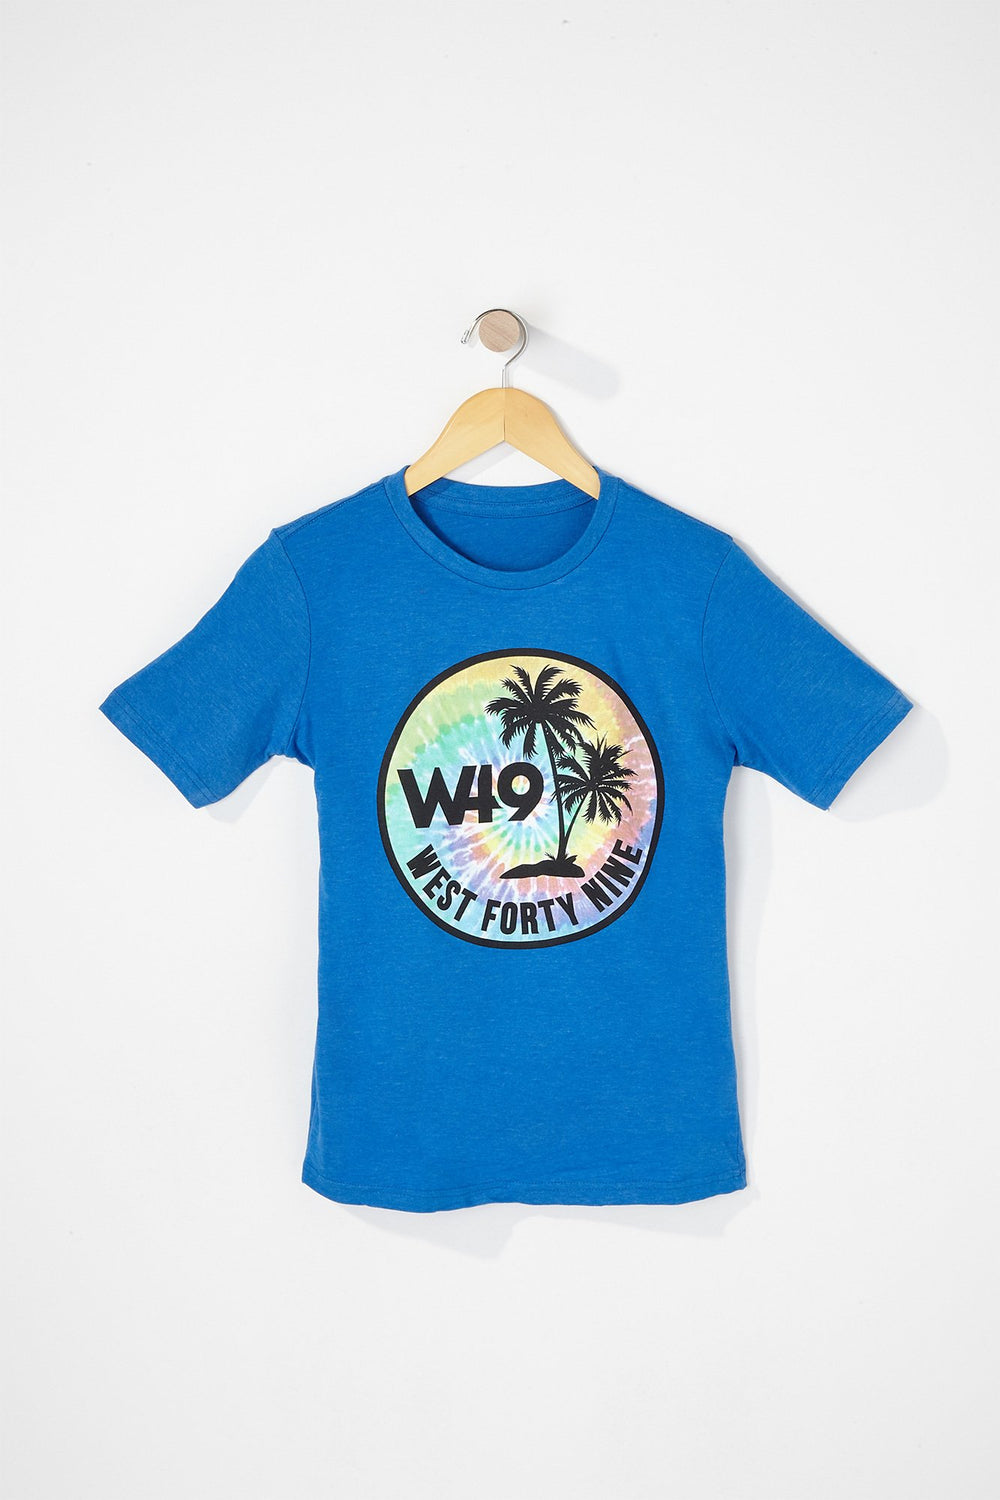 West49 Boys Tie Dye Circle Logo T-Shirt Turquoise